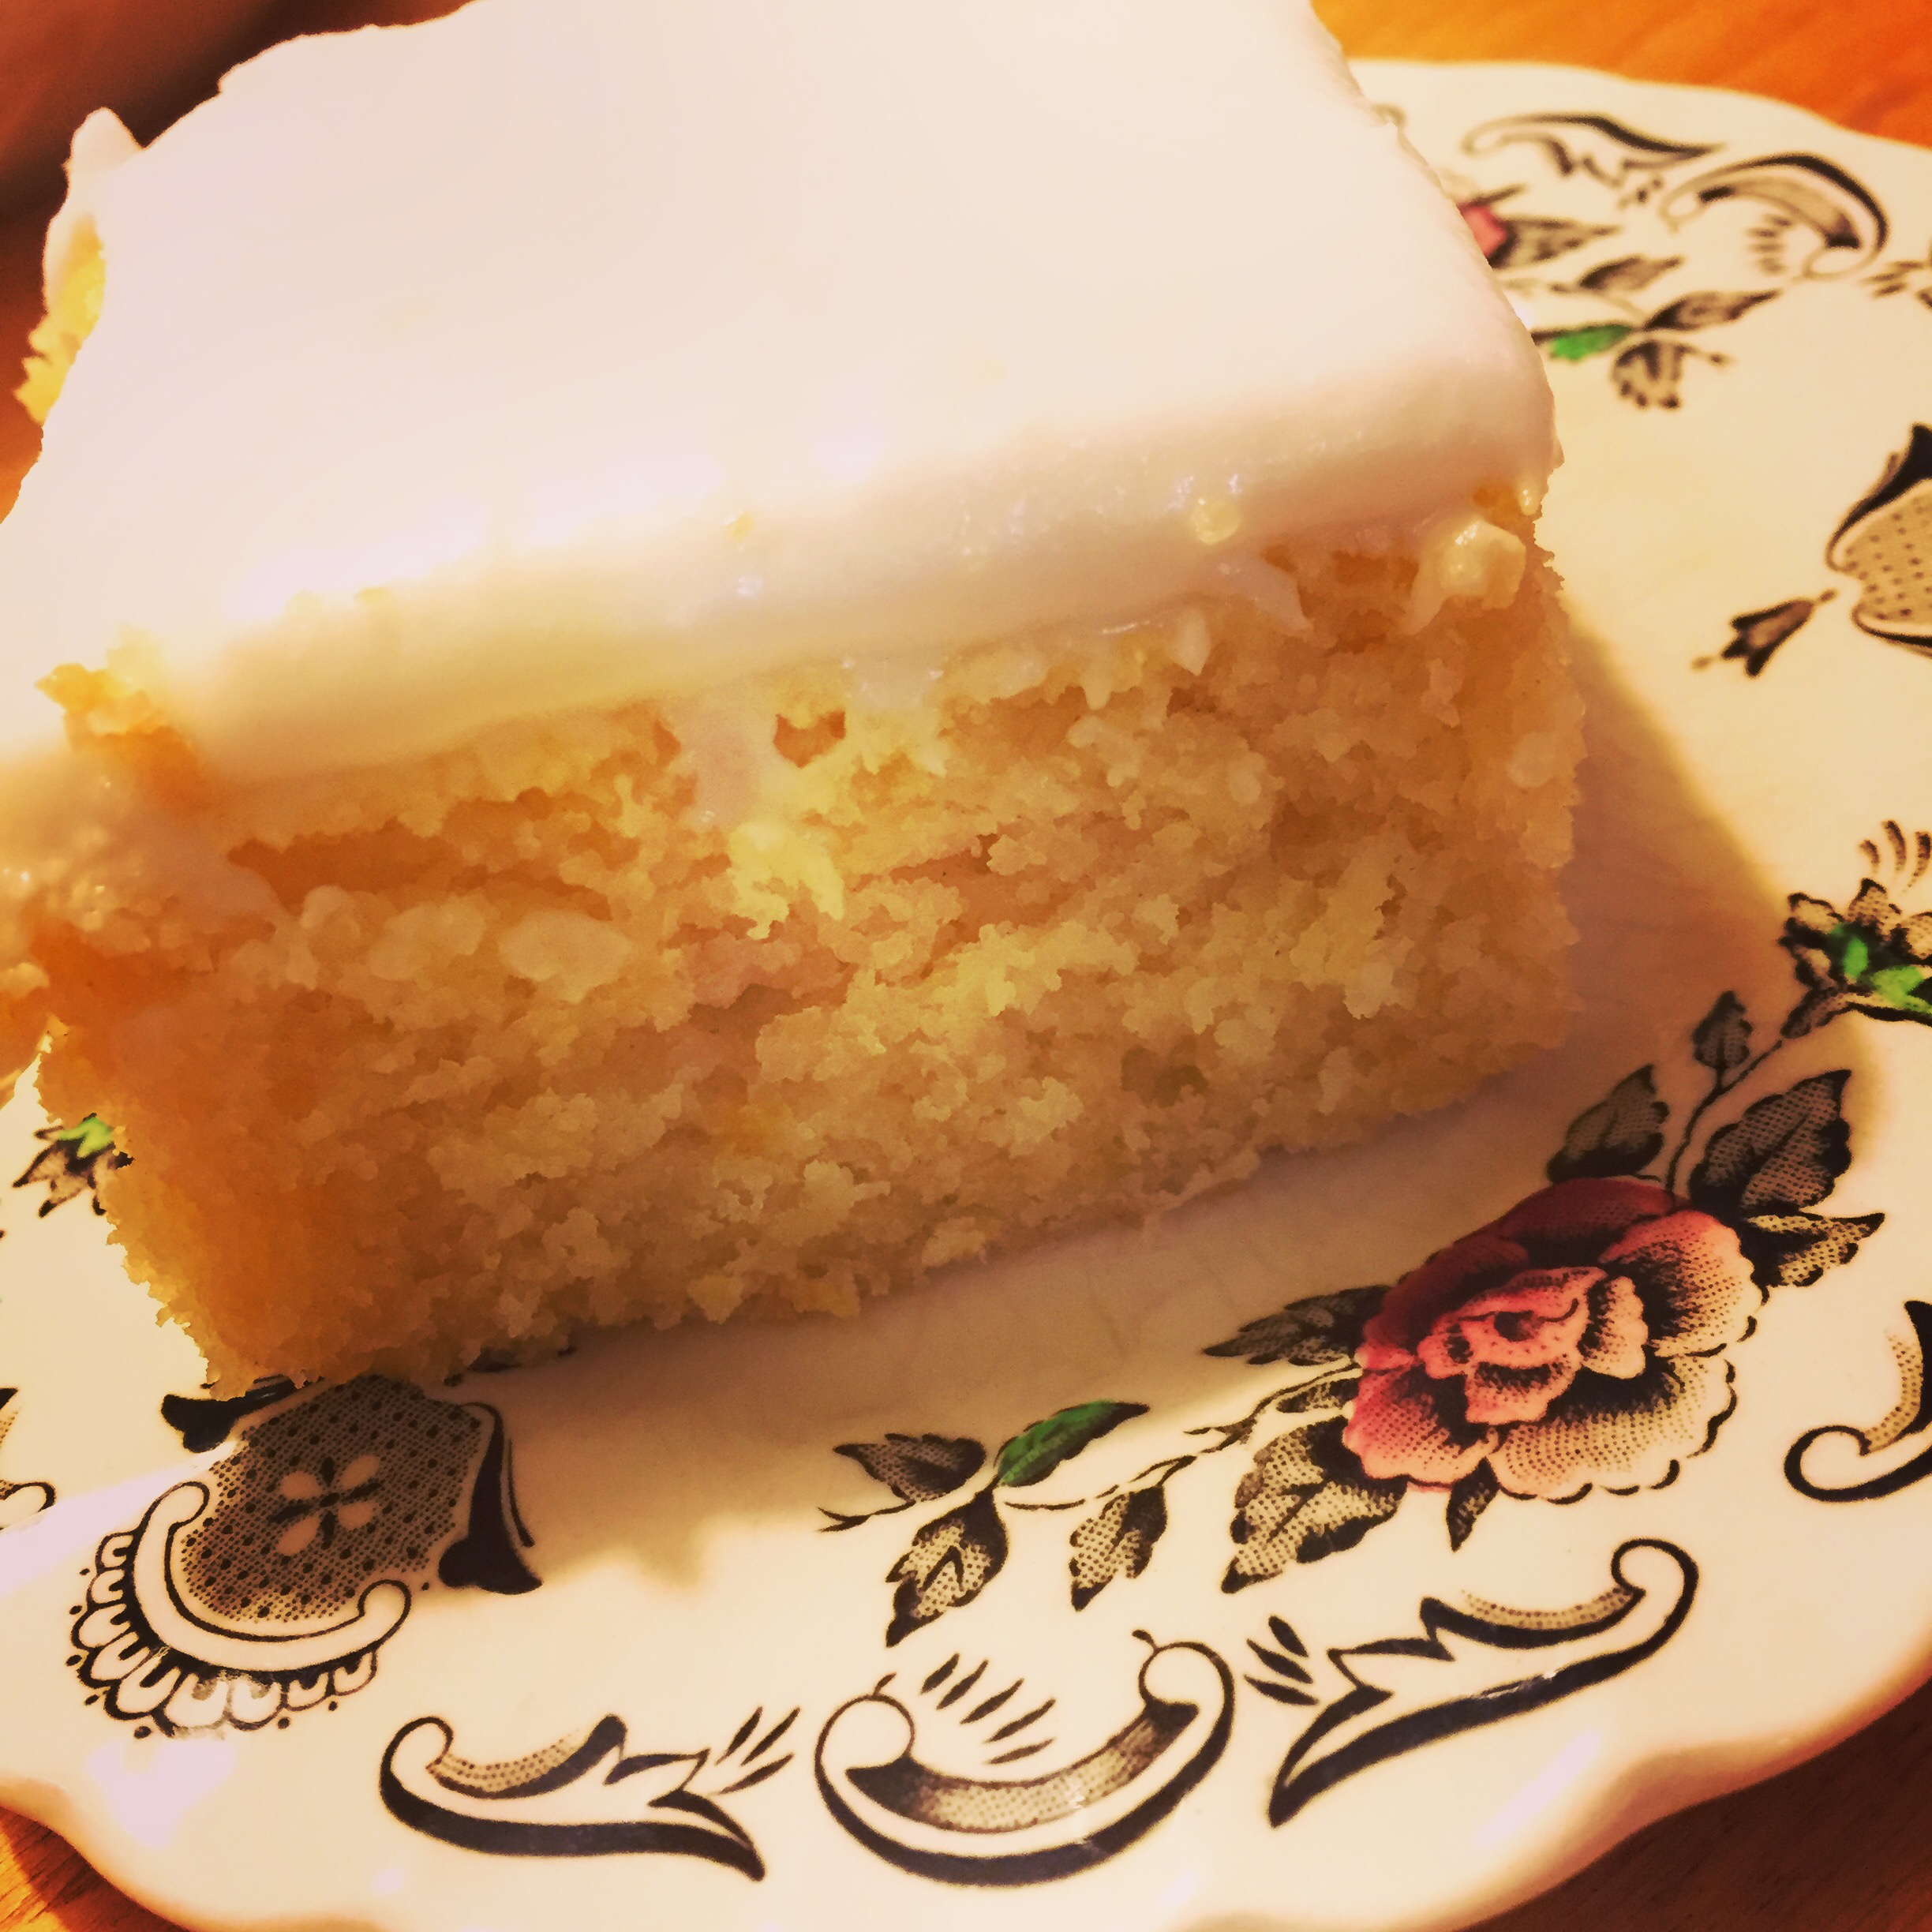 Lemon Cake From Scratch Heather Strong Moore